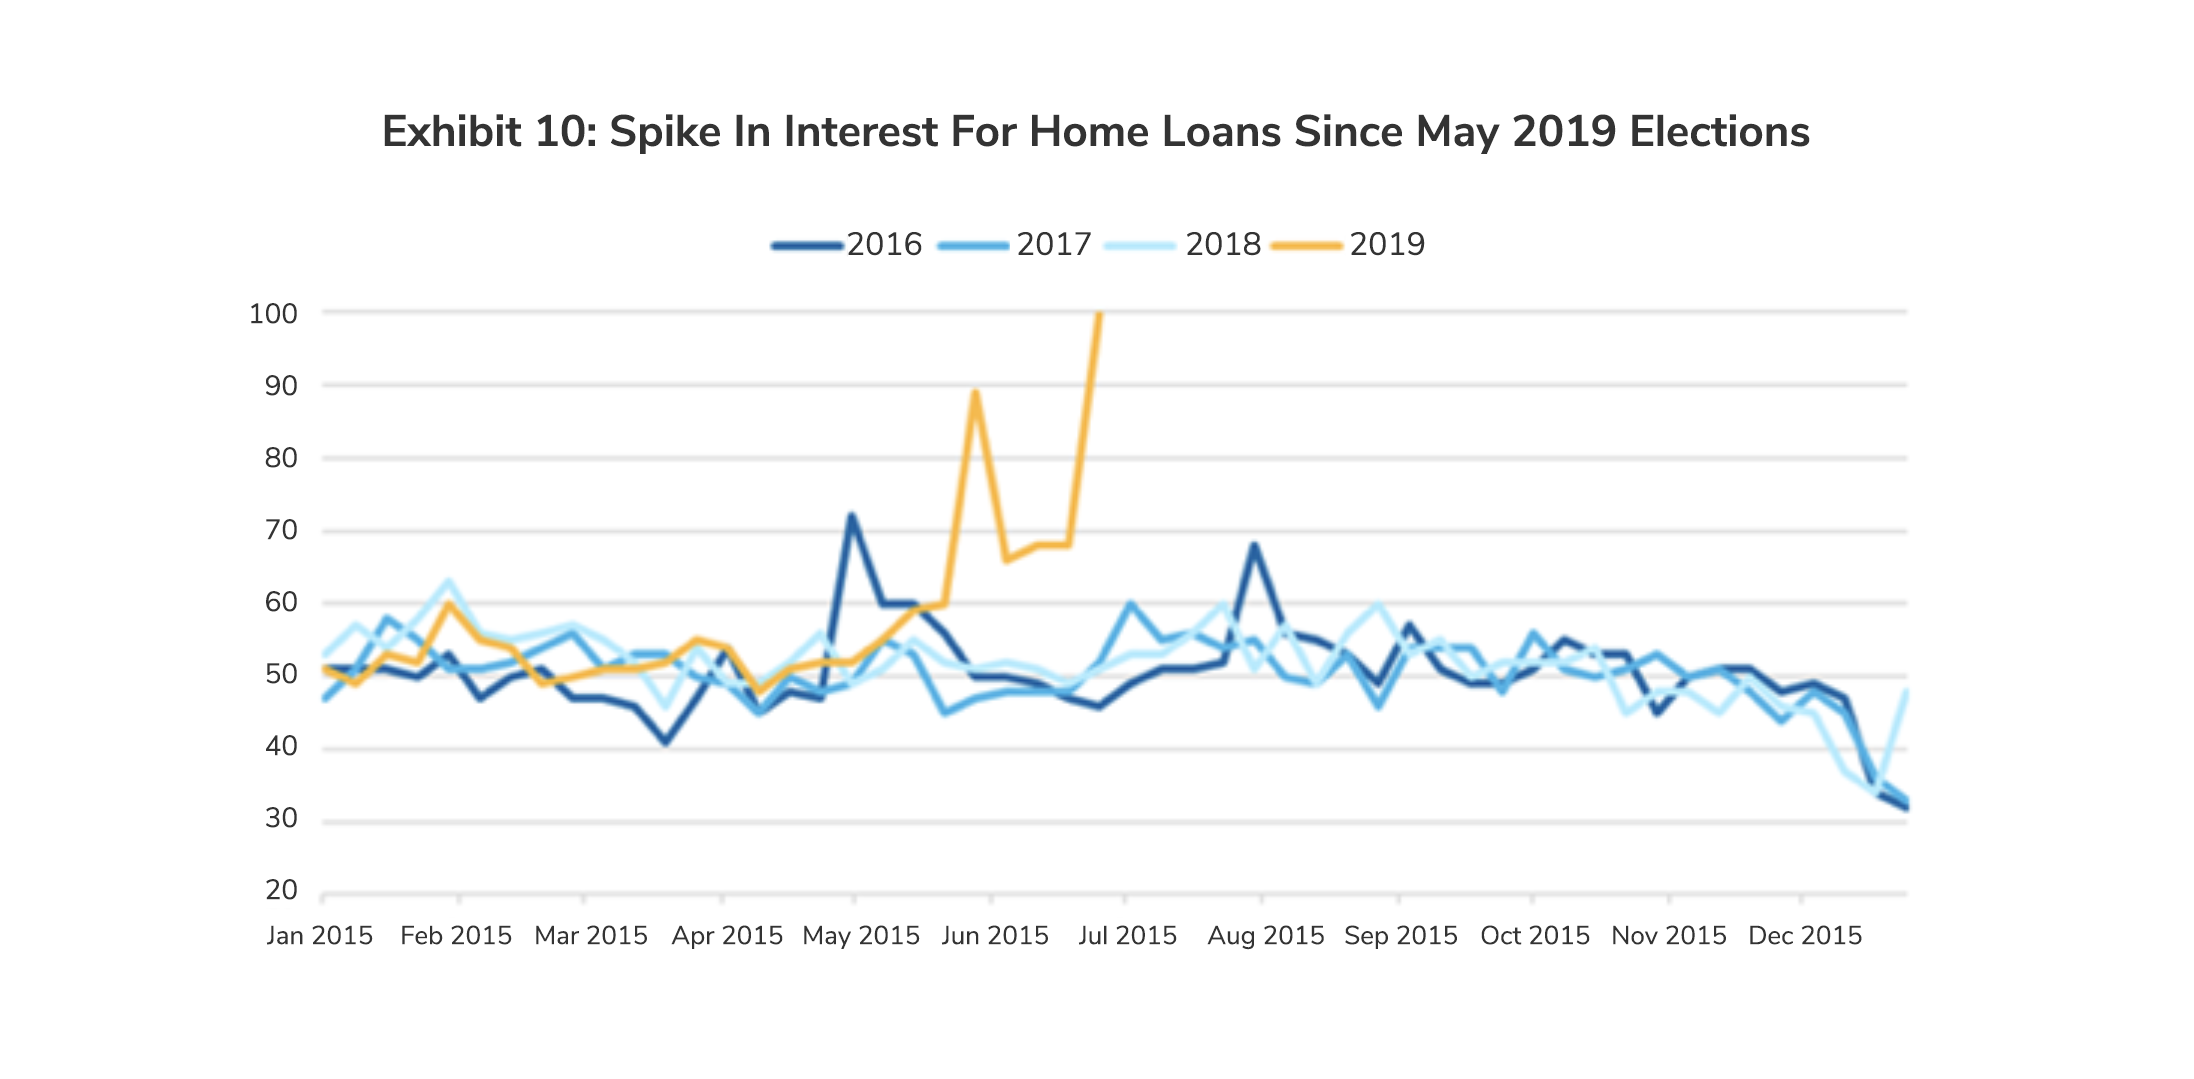 Spike in Interest for Home Loans Since from 2016 Till the May 2019 Elections